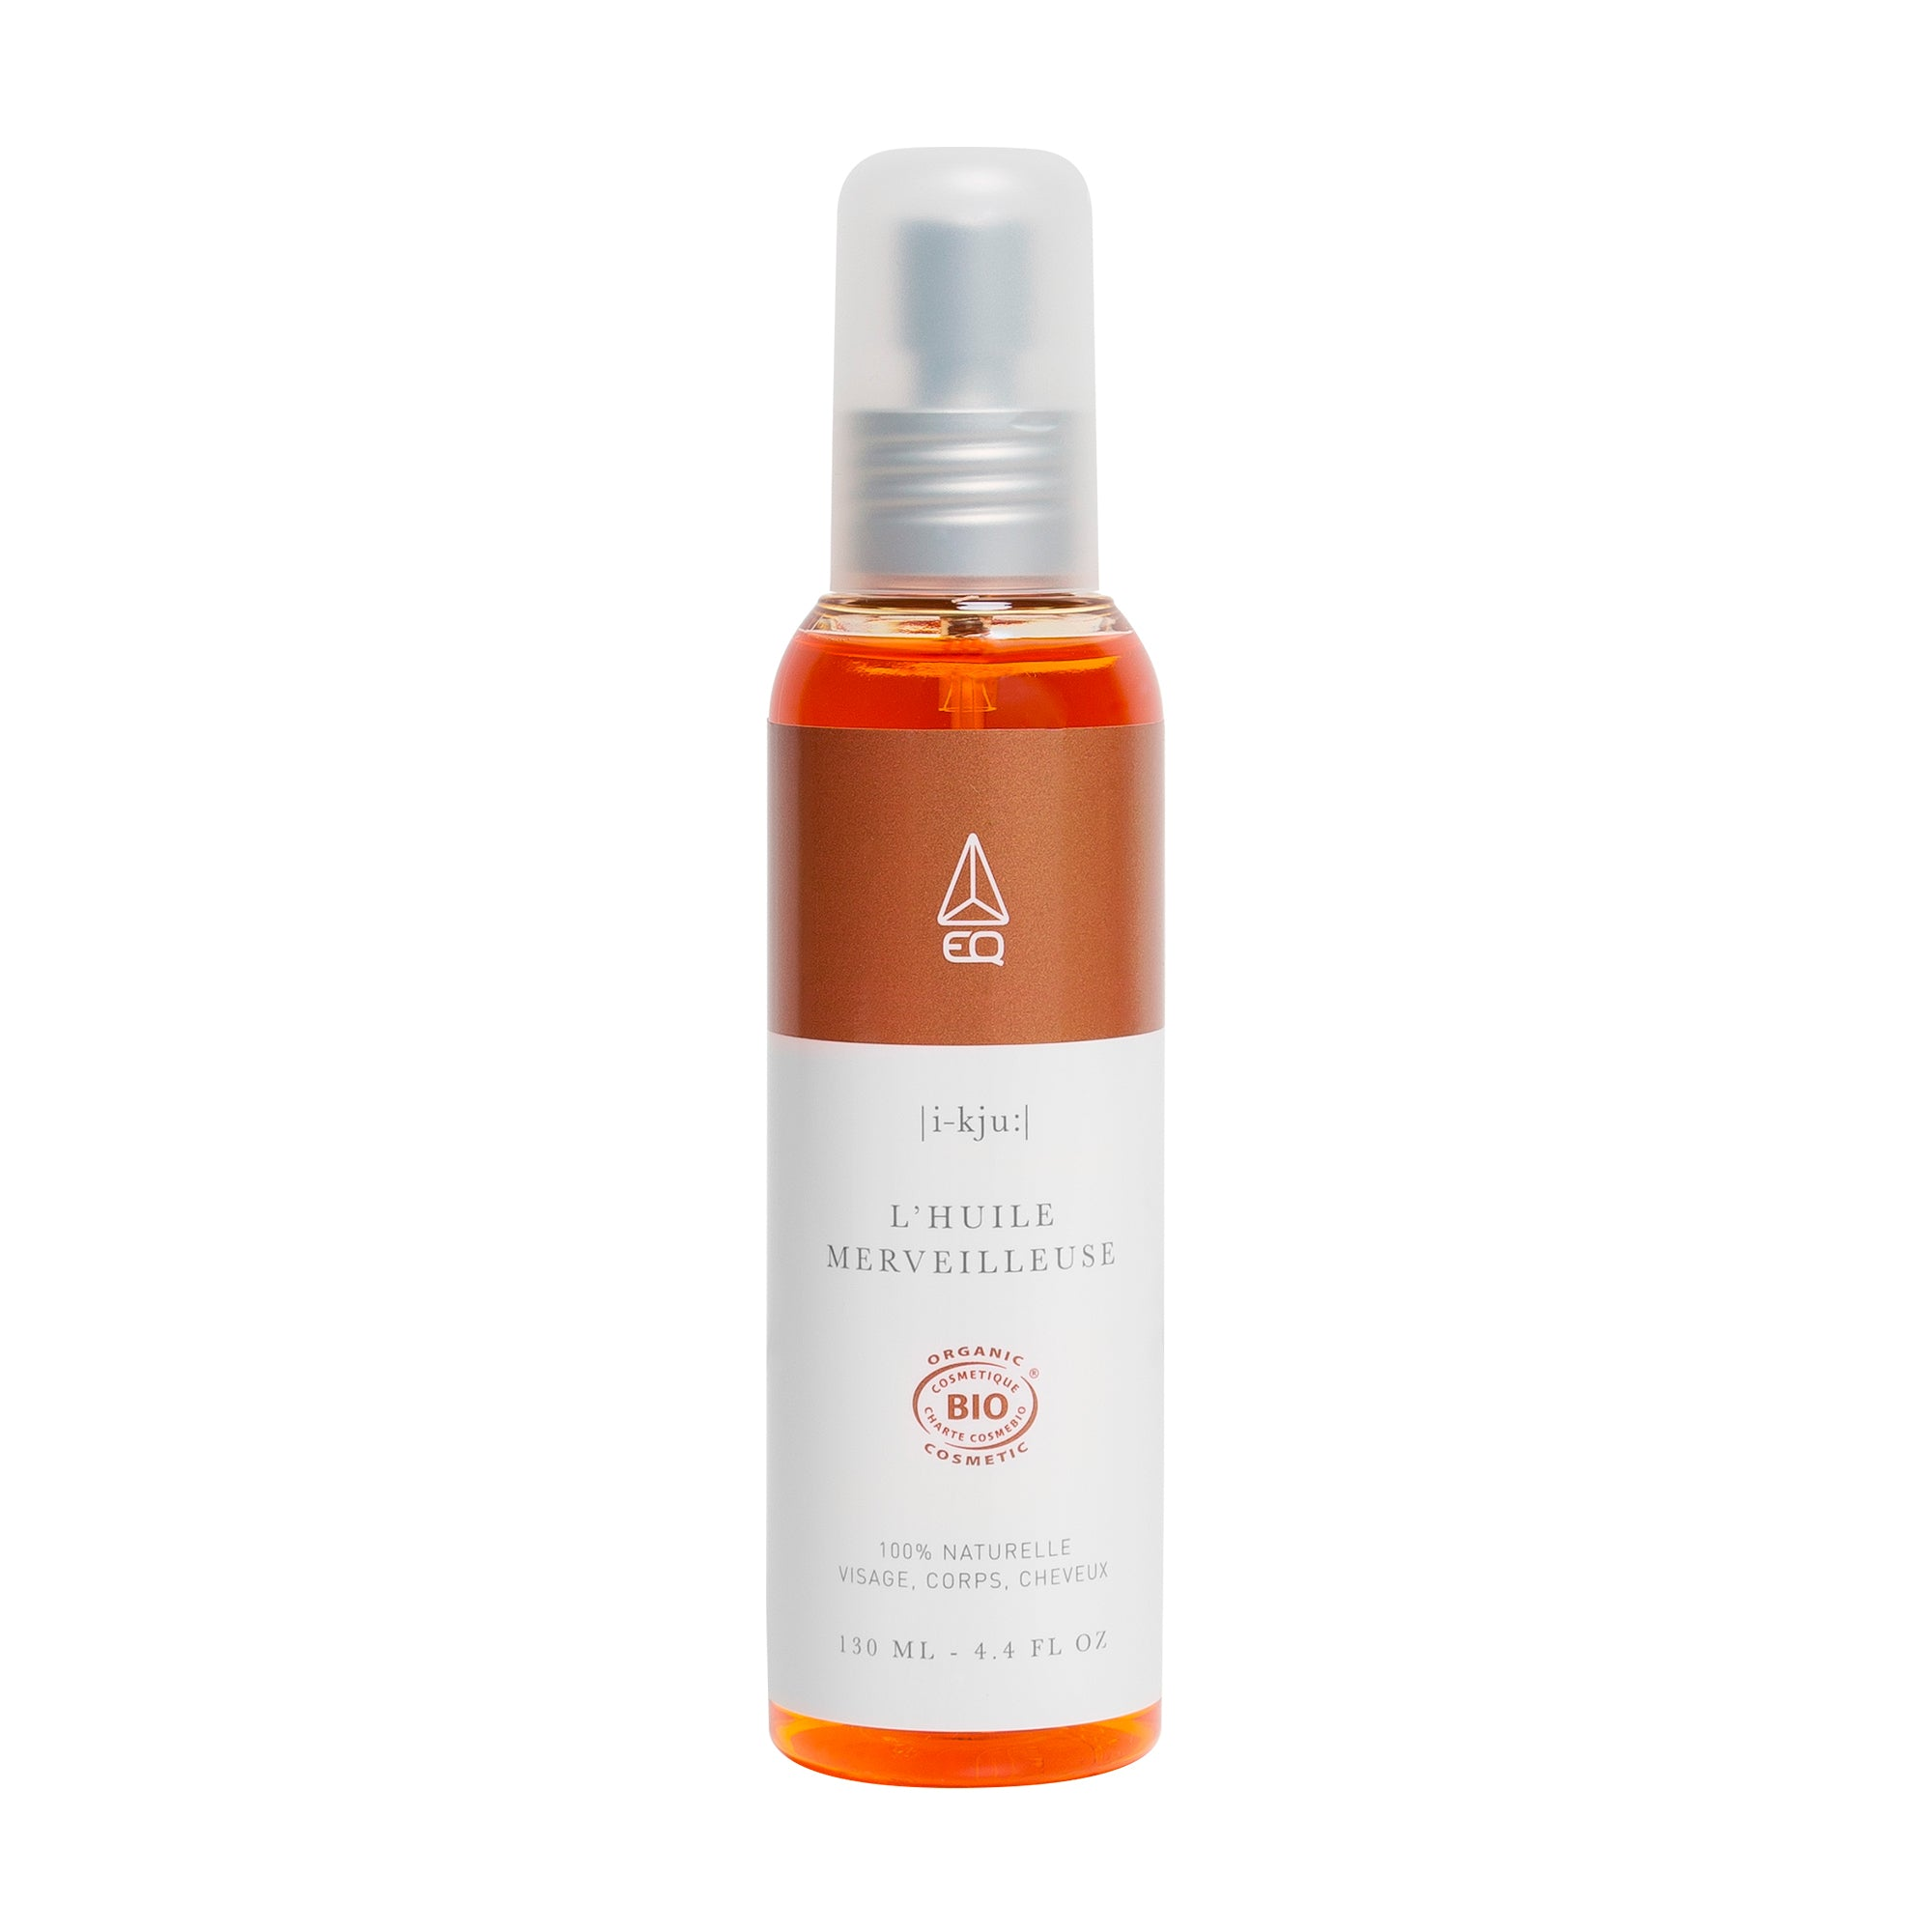 Wonderful Nourishing Oil/ Huile Merveilleuse